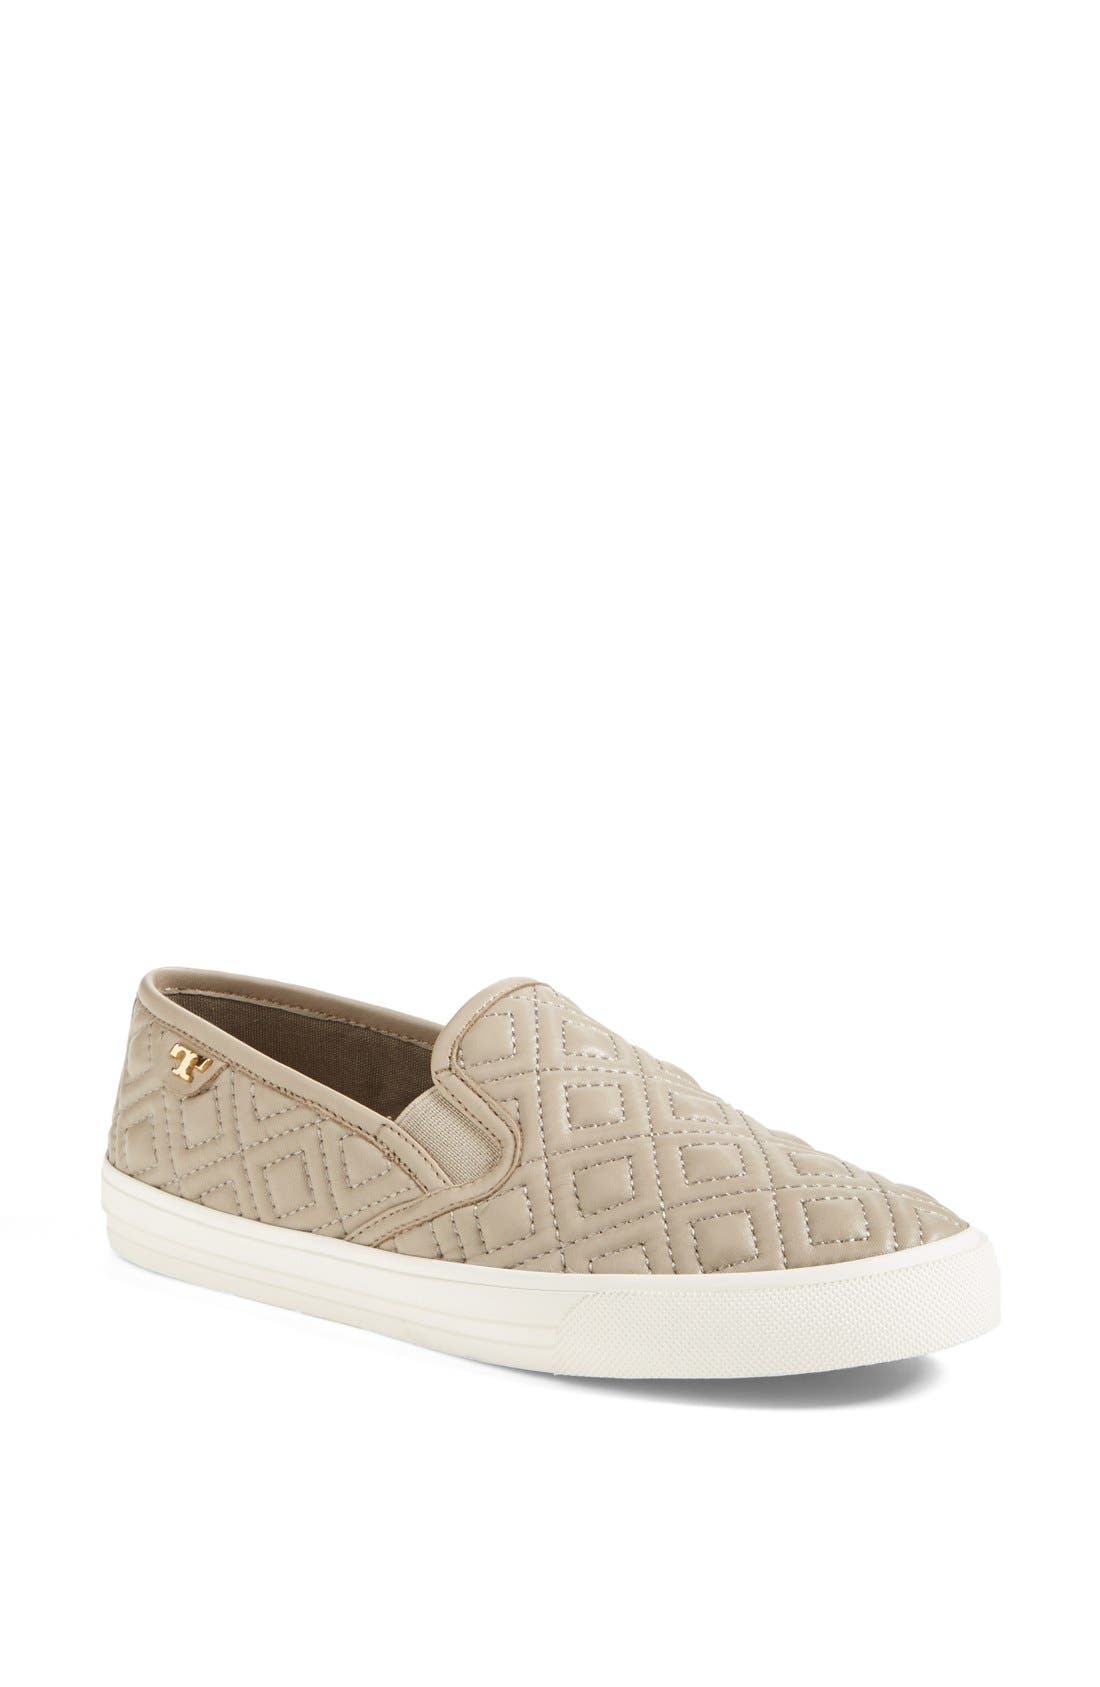 Main Image - Tory Burch 'Jesse' Quilted Leather Sneaker